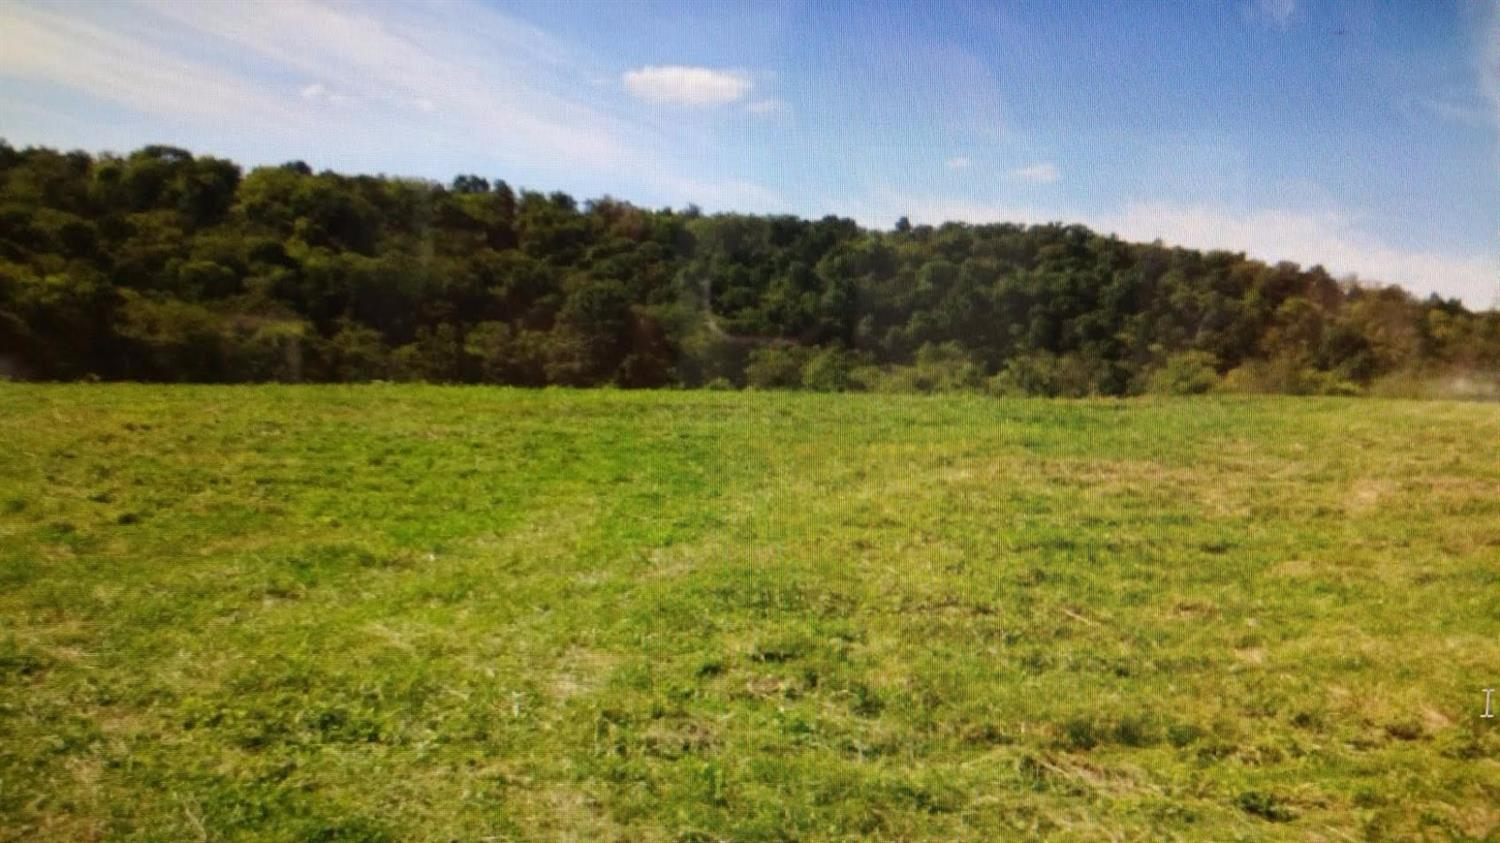 Rare%20find!%20Hunters%20paradise.%20170.21%20acres%20of%20mostly%20gently%20level%20farm%20land.%20This%20acreage%20has%20several%20great%20places%20to%20build%20your%20dream%20home.%20This%20is%20a%20beautiful%20farm%20with%20road%20frontage%20on%20Reagans%20Lane.%20There%20is%20also%201%20mobile%20home%20(in%20need%20of%20repairs),1%20barn%20&%20pond,creek%20runs%20through%20property.%20Fully%20irrigated%20by%20private%20water%20system.%20%20Farm%20is%20in%202%20different%20tracts.%20%20Country%20living%20convenient%20to%20I-75%20&%20shopping.